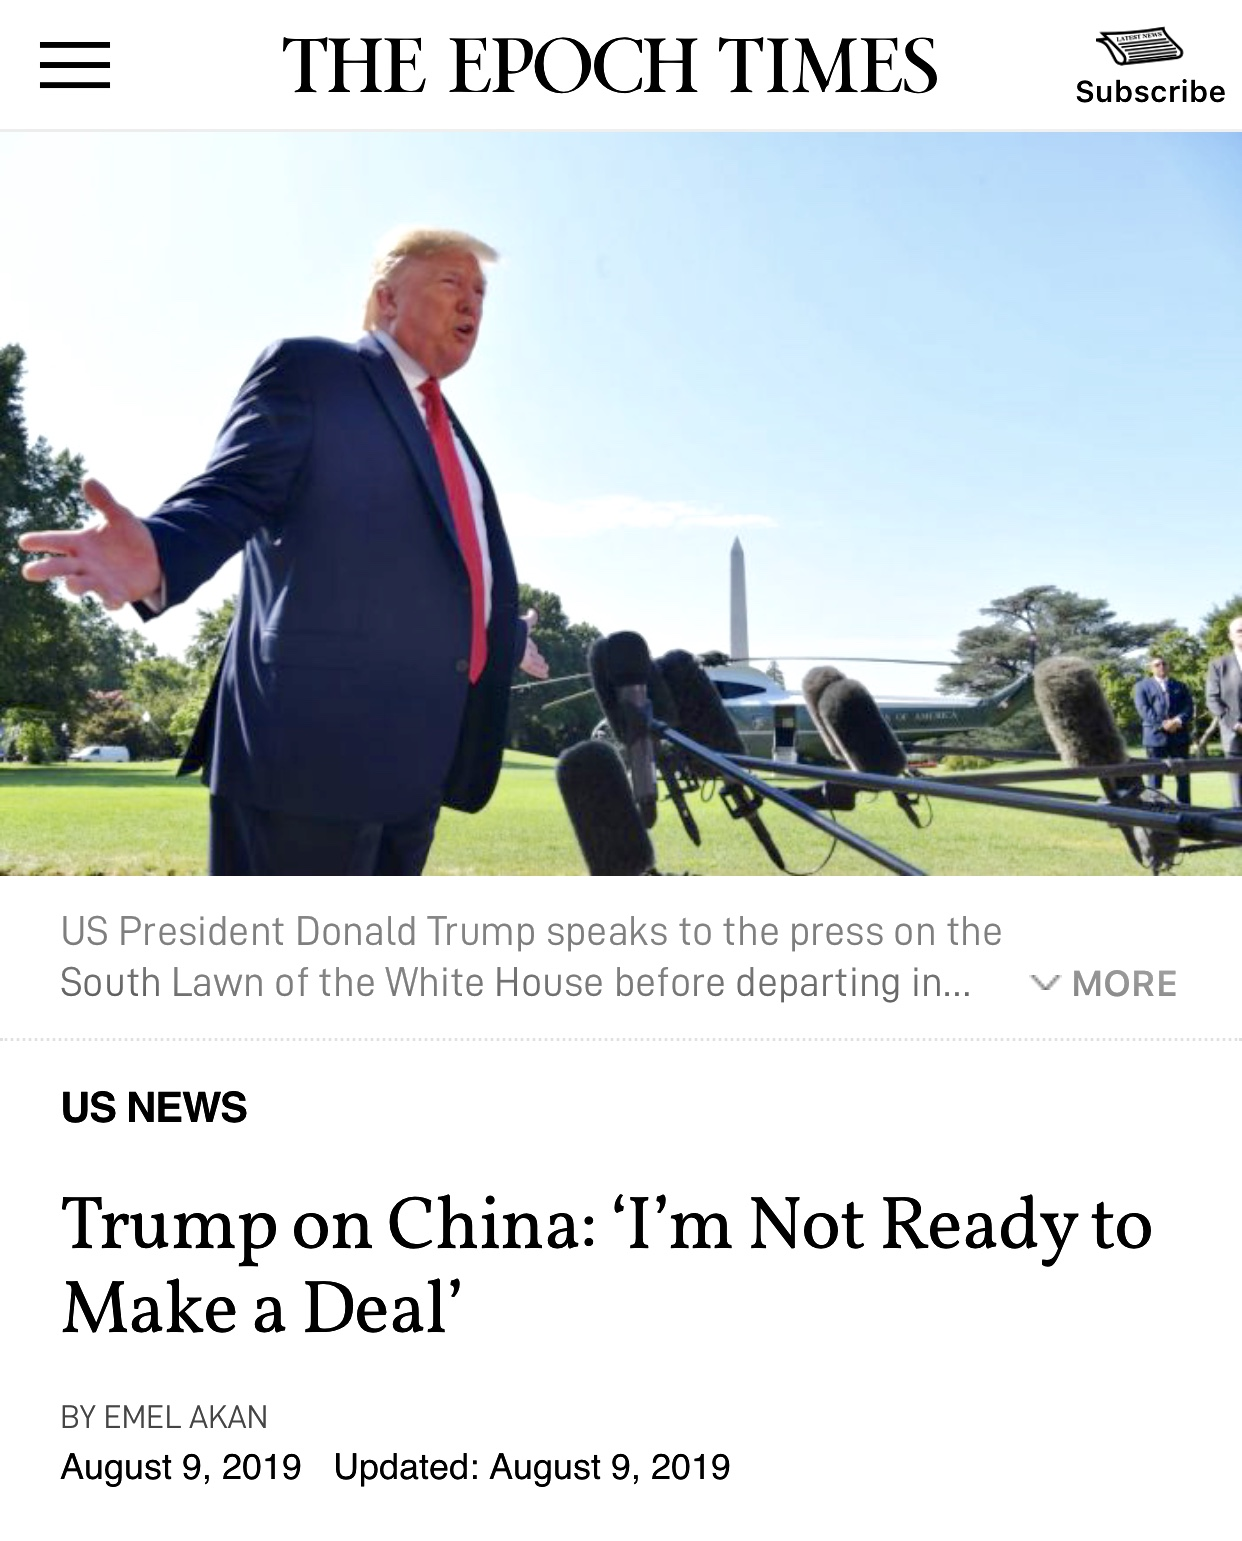 President Trump on China: 'I'm Not Ready to Make a Deal'